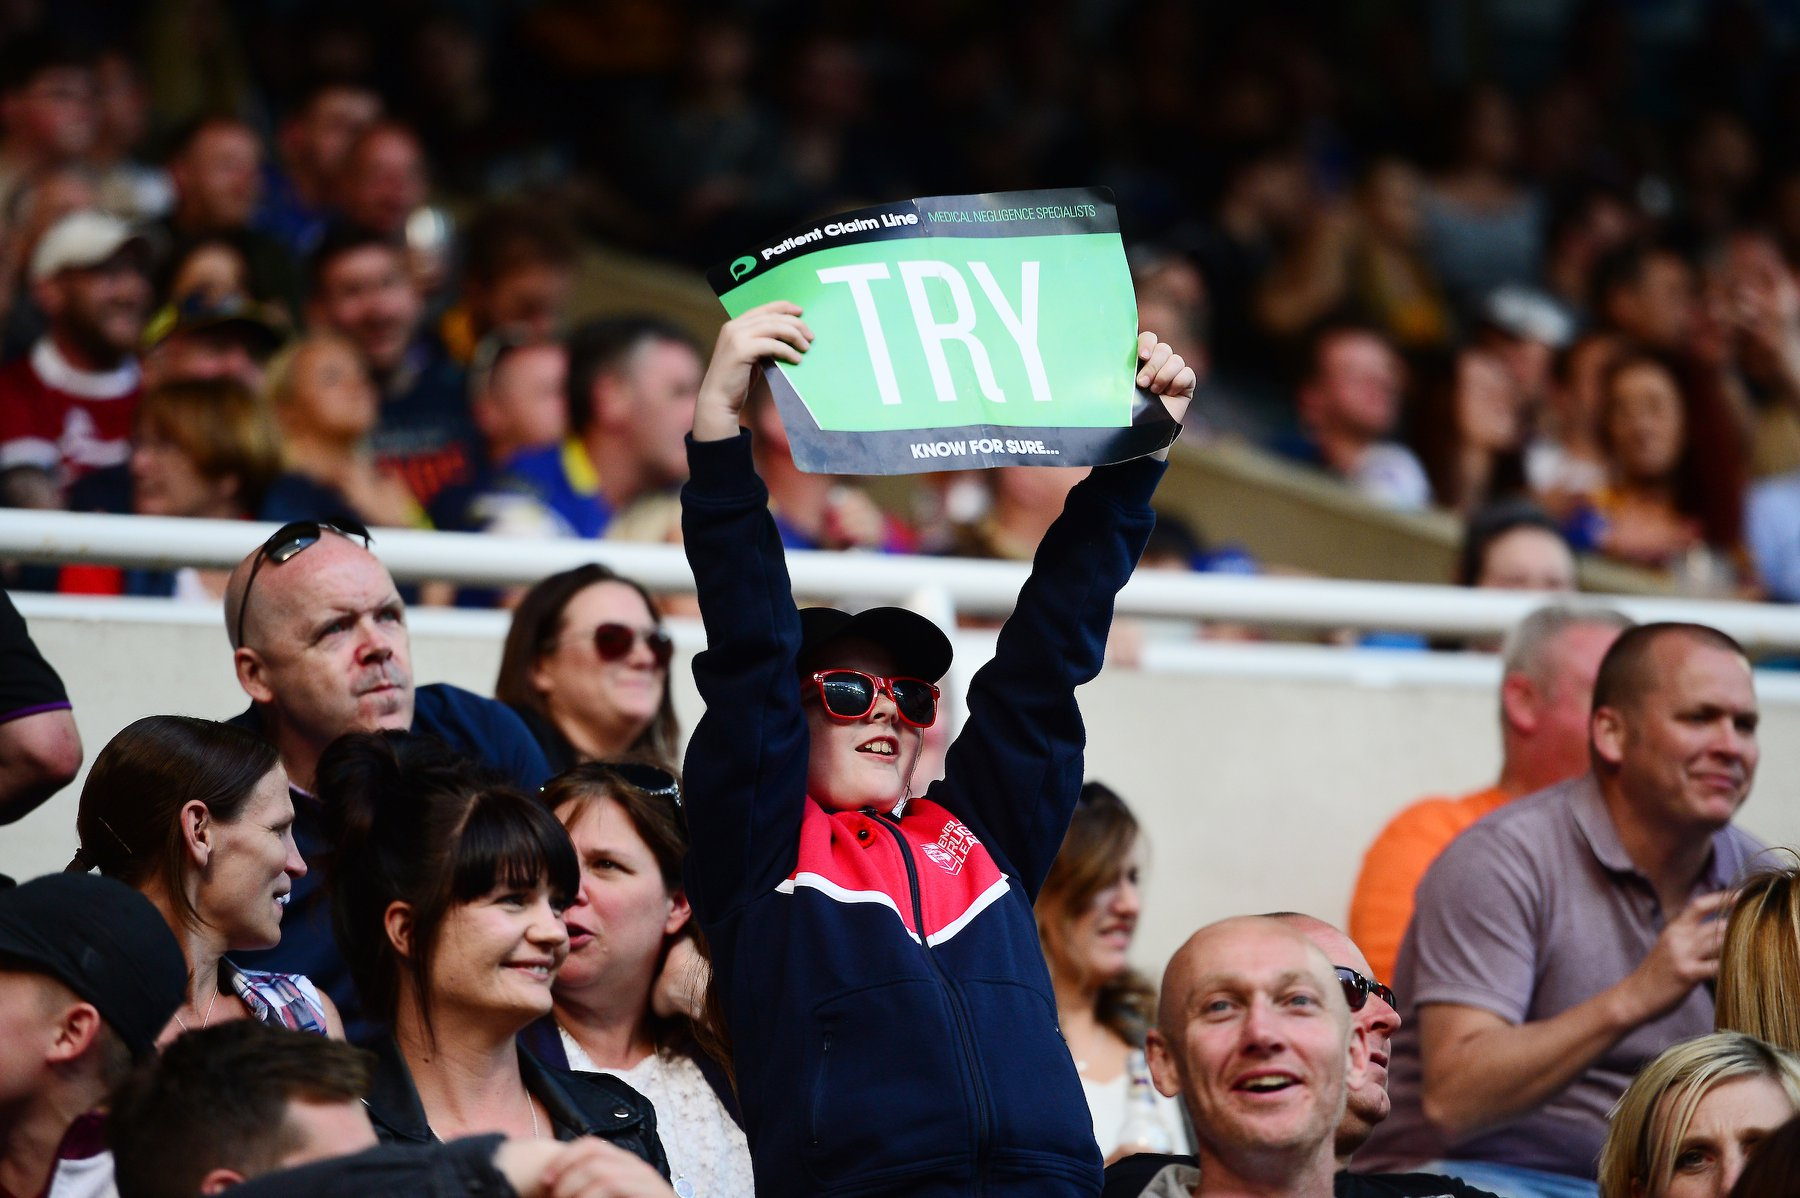 Boy holding Patient Claim Line sign at Betfred Rugby Super League game